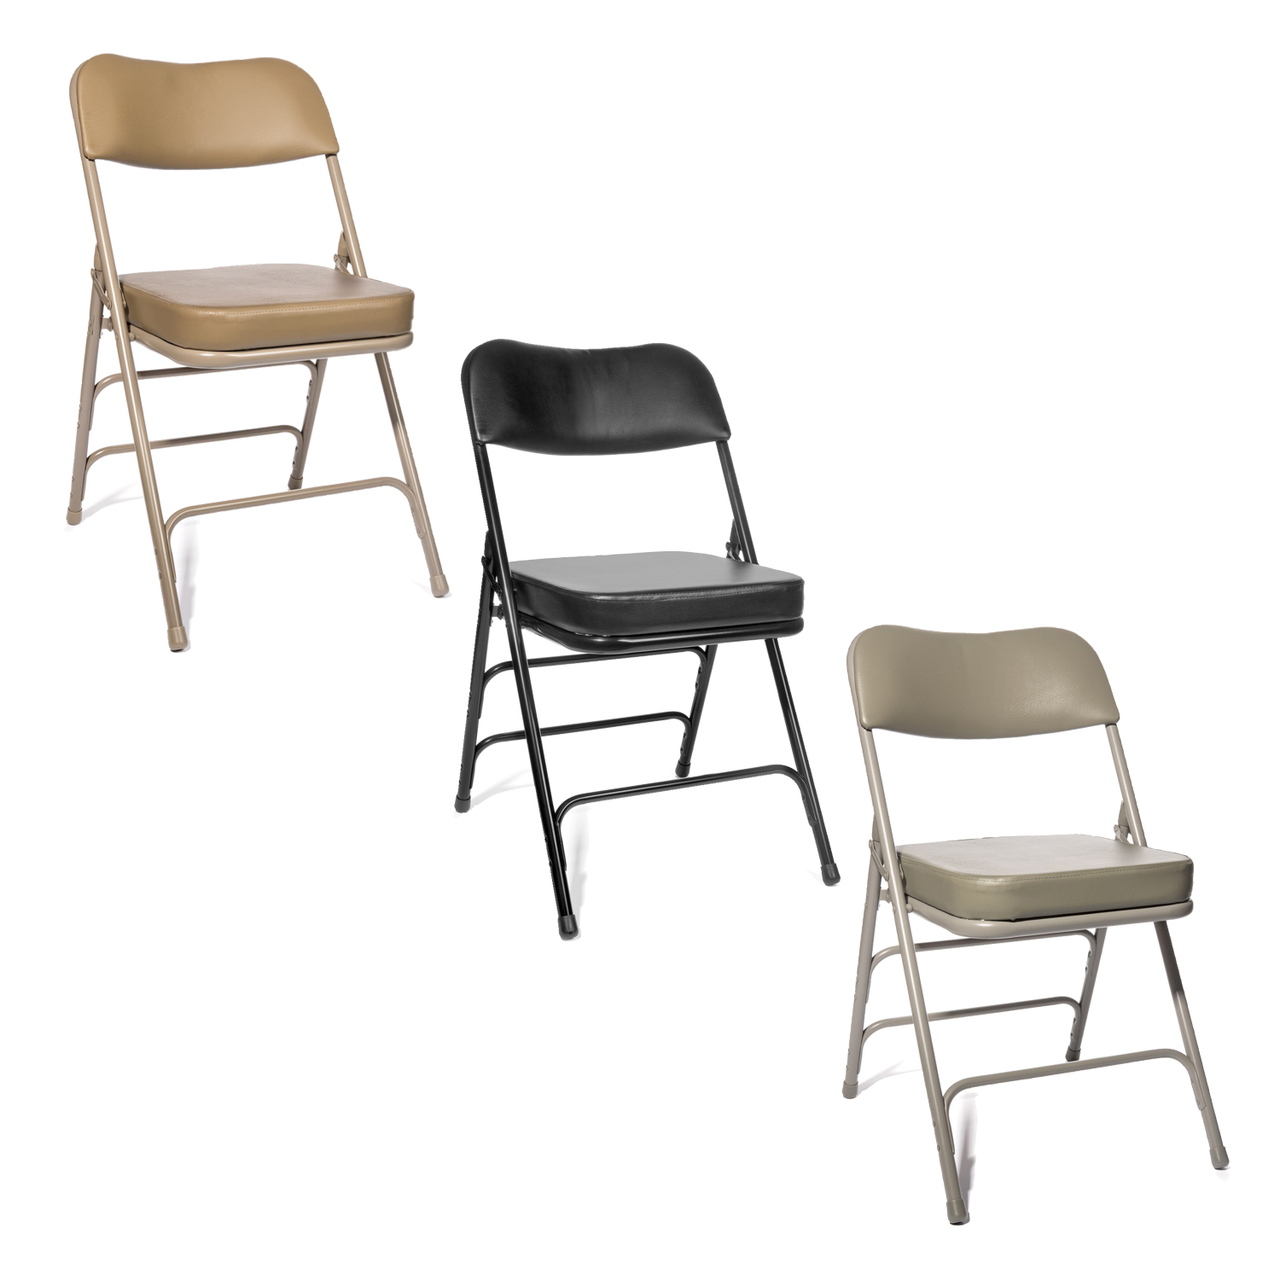 Miraculous Xl Series 2 Inch Vinyl Padded Folding Chair 2 Taller Back Quad Hinging Triple Cross Braces Pabps2019 Chair Design Images Pabps2019Com